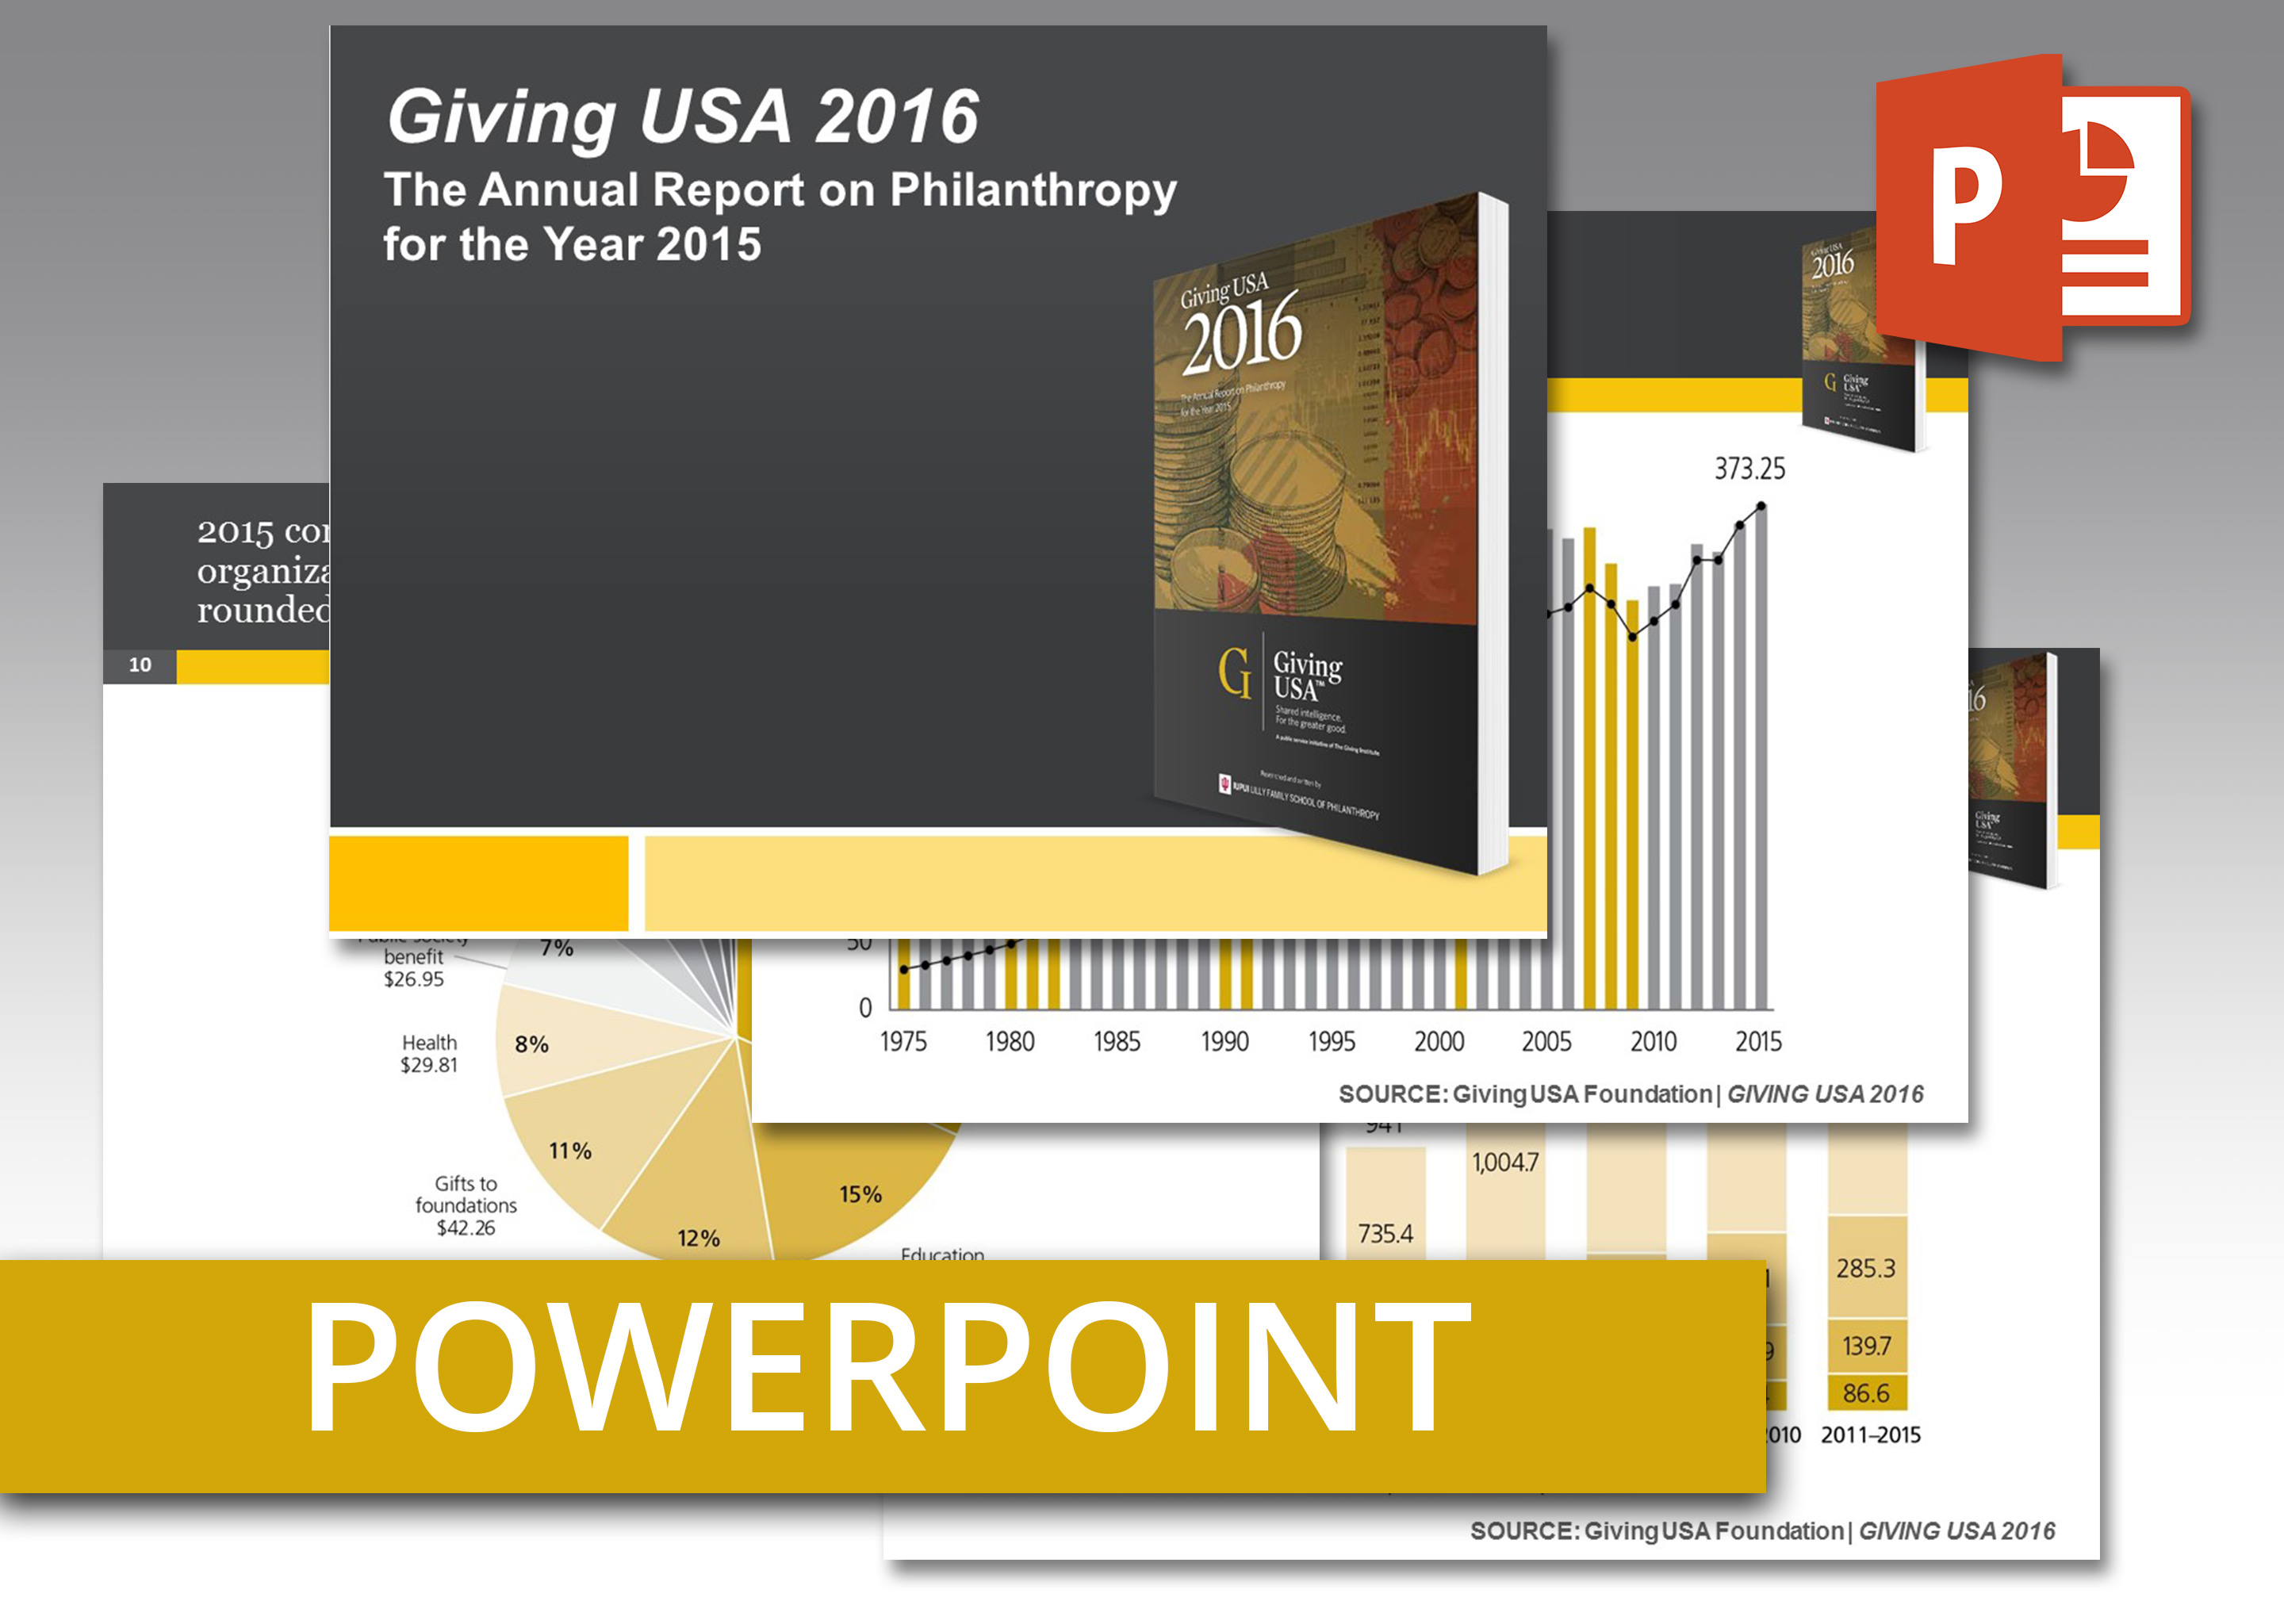 Usdgus  Ravishing Giving Usa  Powerpoint An Easytouse Presentation Of Report  With Inspiring Giving Usa  Powerpoint An Easytouse Presentation Of Report Findings Including Talking Points With Breathtaking Powerpoint Presentation Education Also Powerpoint To Excel Converter In Addition Life Cycle Of A Sunflower Powerpoint And Dna Powerpoints As Well As Powerpoint Macbook Air Additionally Animation Of Thank You For Powerpoint From Givingusaorg With Usdgus  Inspiring Giving Usa  Powerpoint An Easytouse Presentation Of Report  With Breathtaking Giving Usa  Powerpoint An Easytouse Presentation Of Report Findings Including Talking Points And Ravishing Powerpoint Presentation Education Also Powerpoint To Excel Converter In Addition Life Cycle Of A Sunflower Powerpoint From Givingusaorg